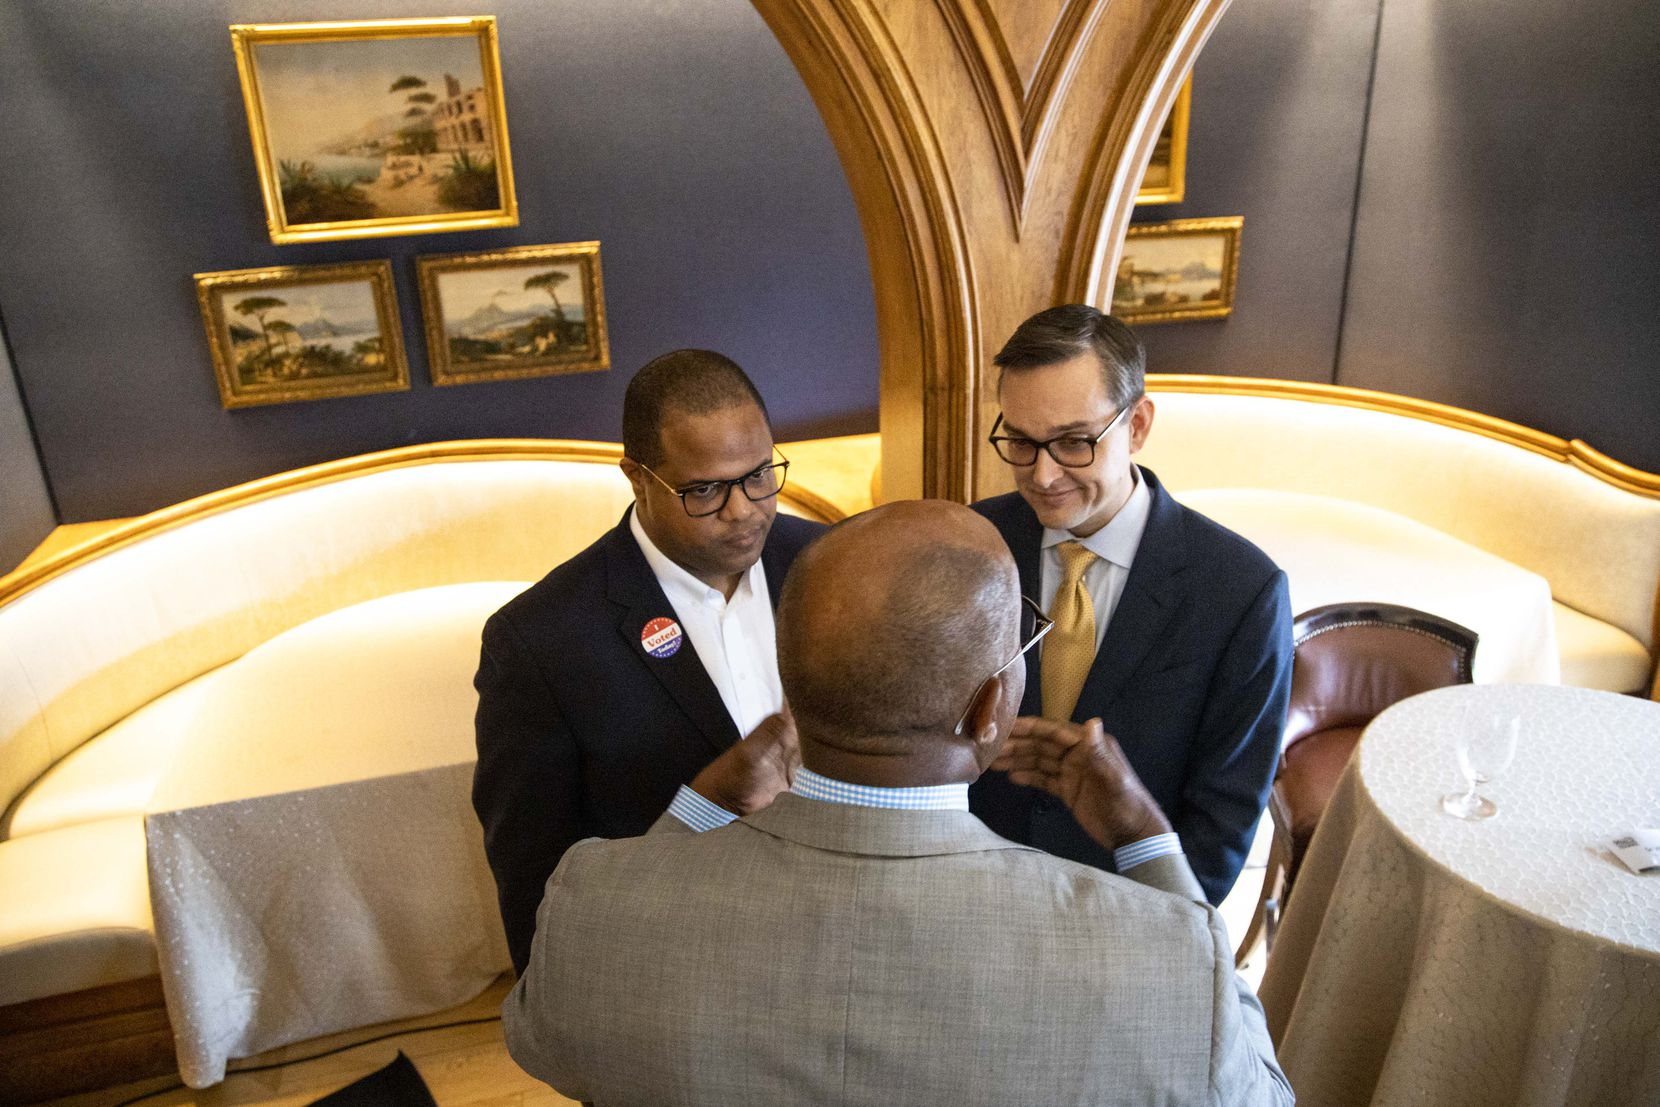 Mayoral candidates Eric Johnson and Scott Griggs chats with a member of the Dallas Citizen Council after their debate at The Crescent Club in Dallas on Tuesday, May 28, 2019.